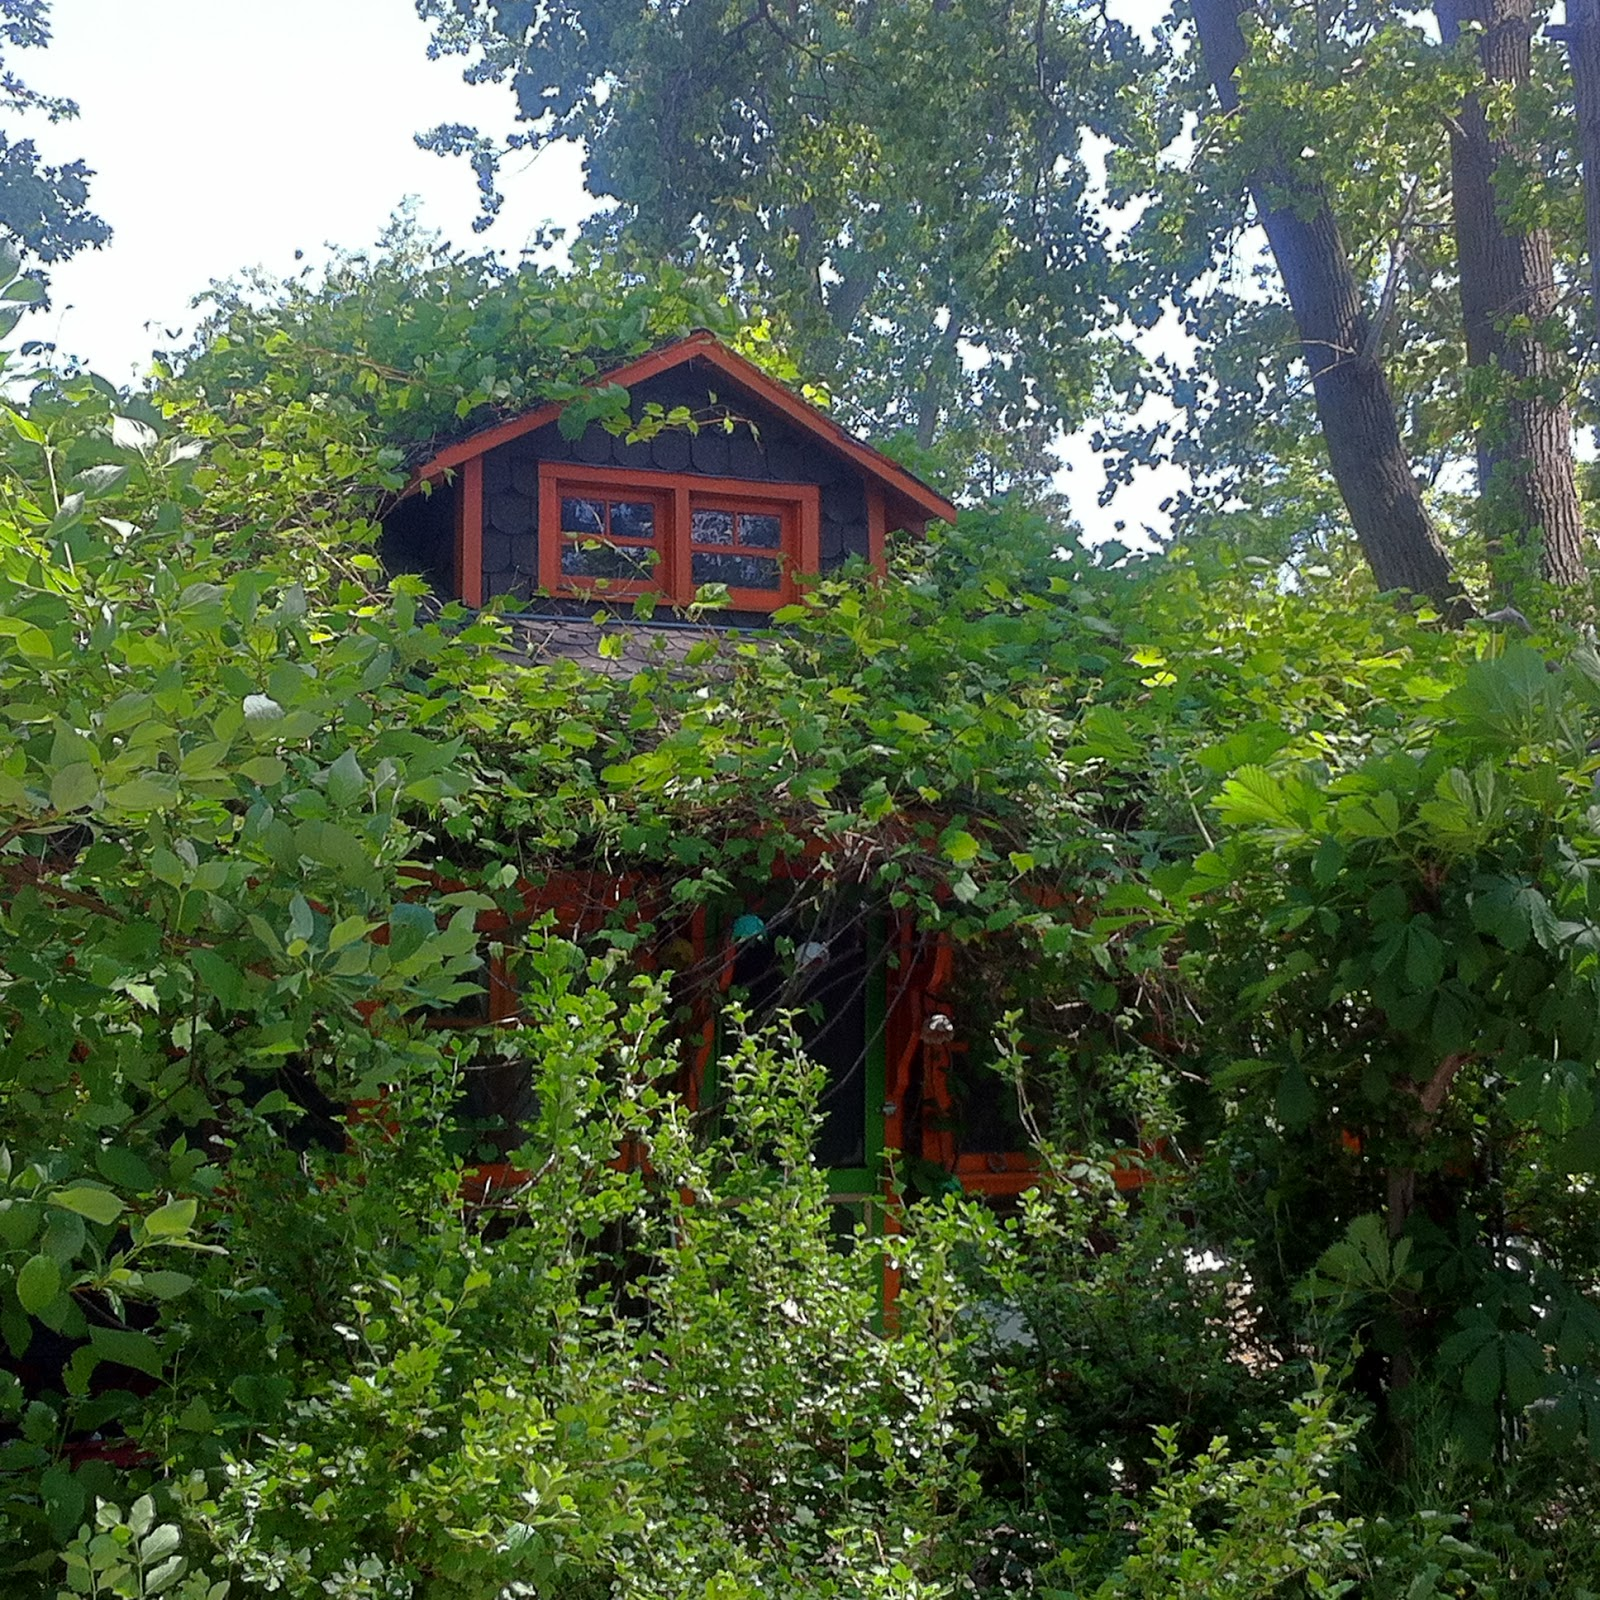 essay eh toronto islands a perfect place on a summer s day life is quiet here motor vehicles are scarce but dogs and bicycles park outside the outdoor cafe one side faces lake ontario the other overlooks